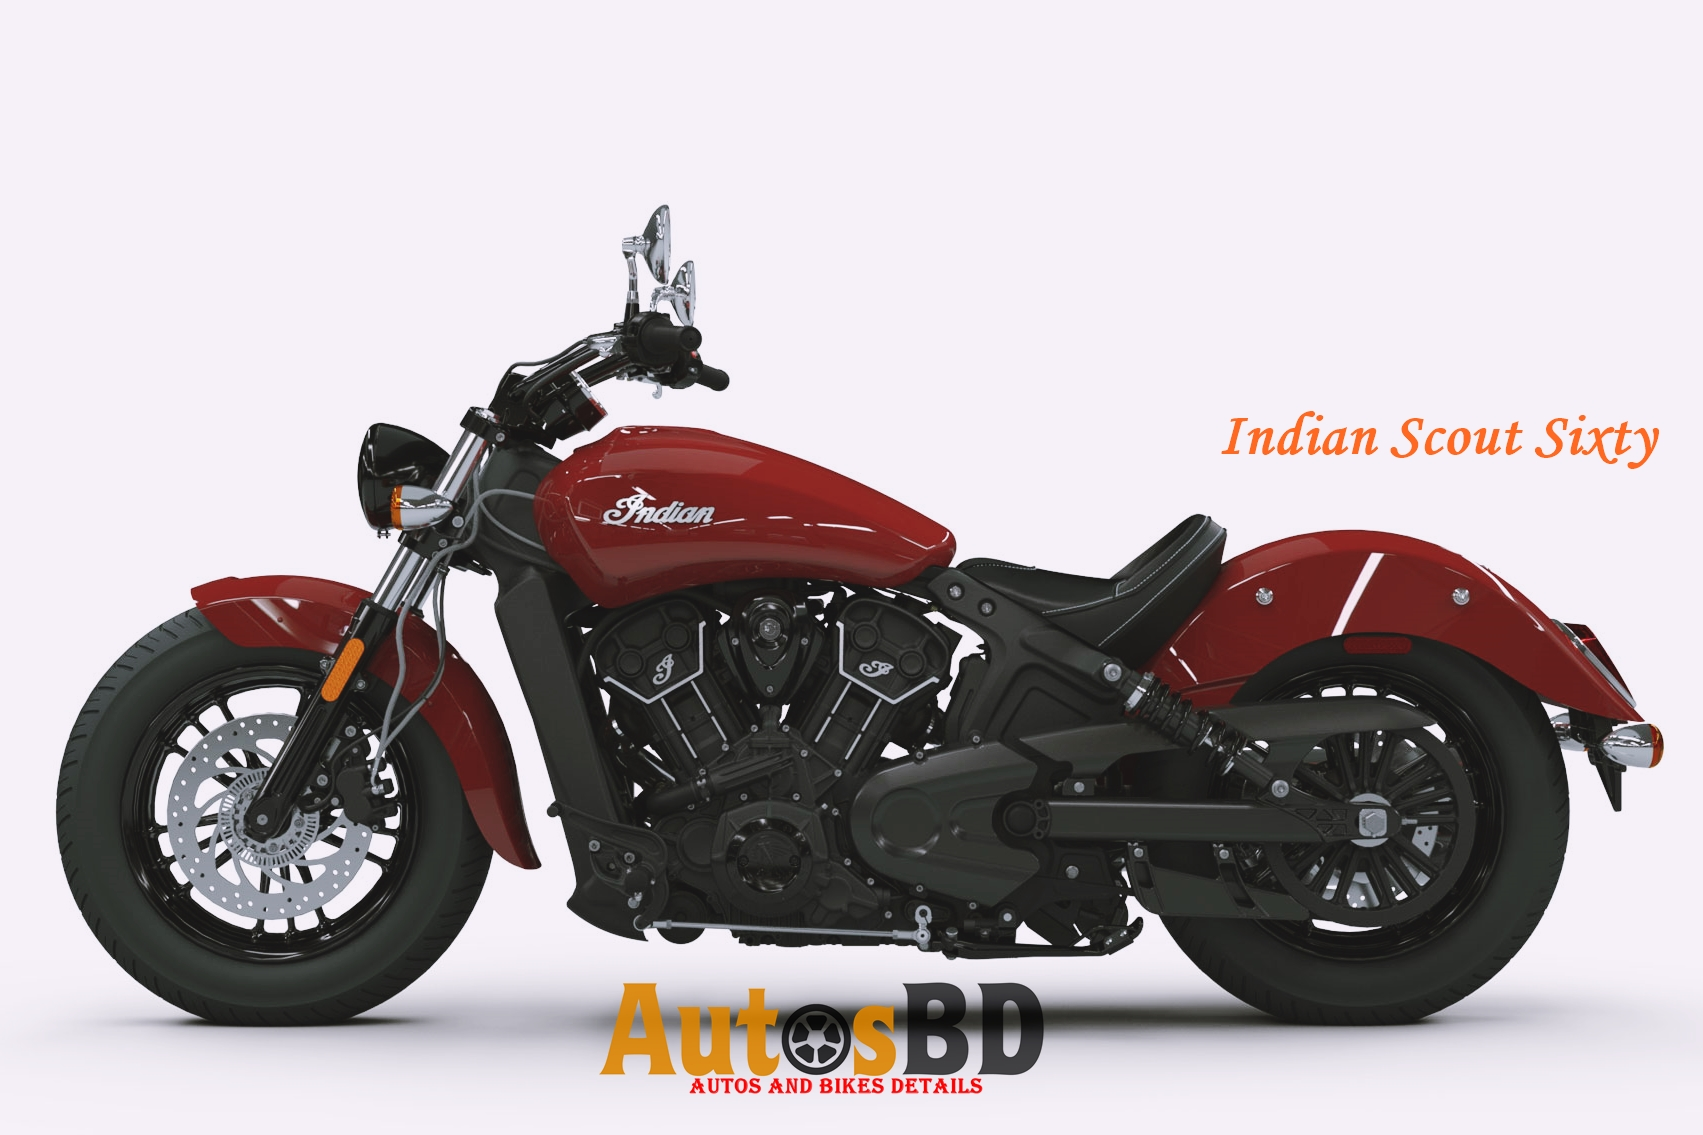 Indian Scout Sixty Motorcycle Specification